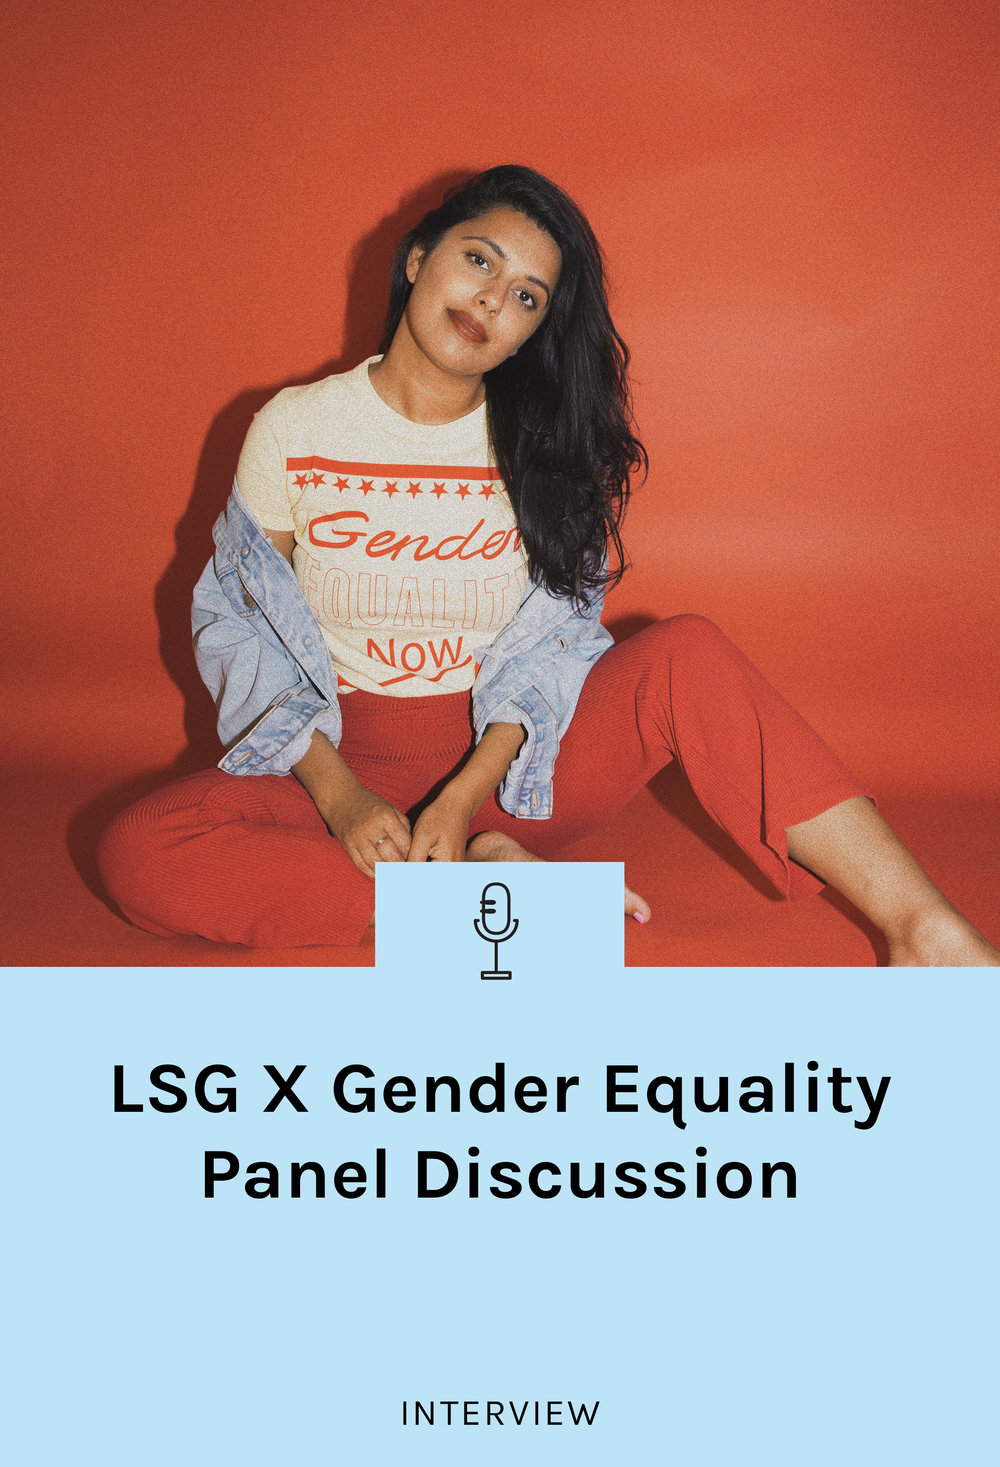 lsg-x-gender-equality-panel-discussion